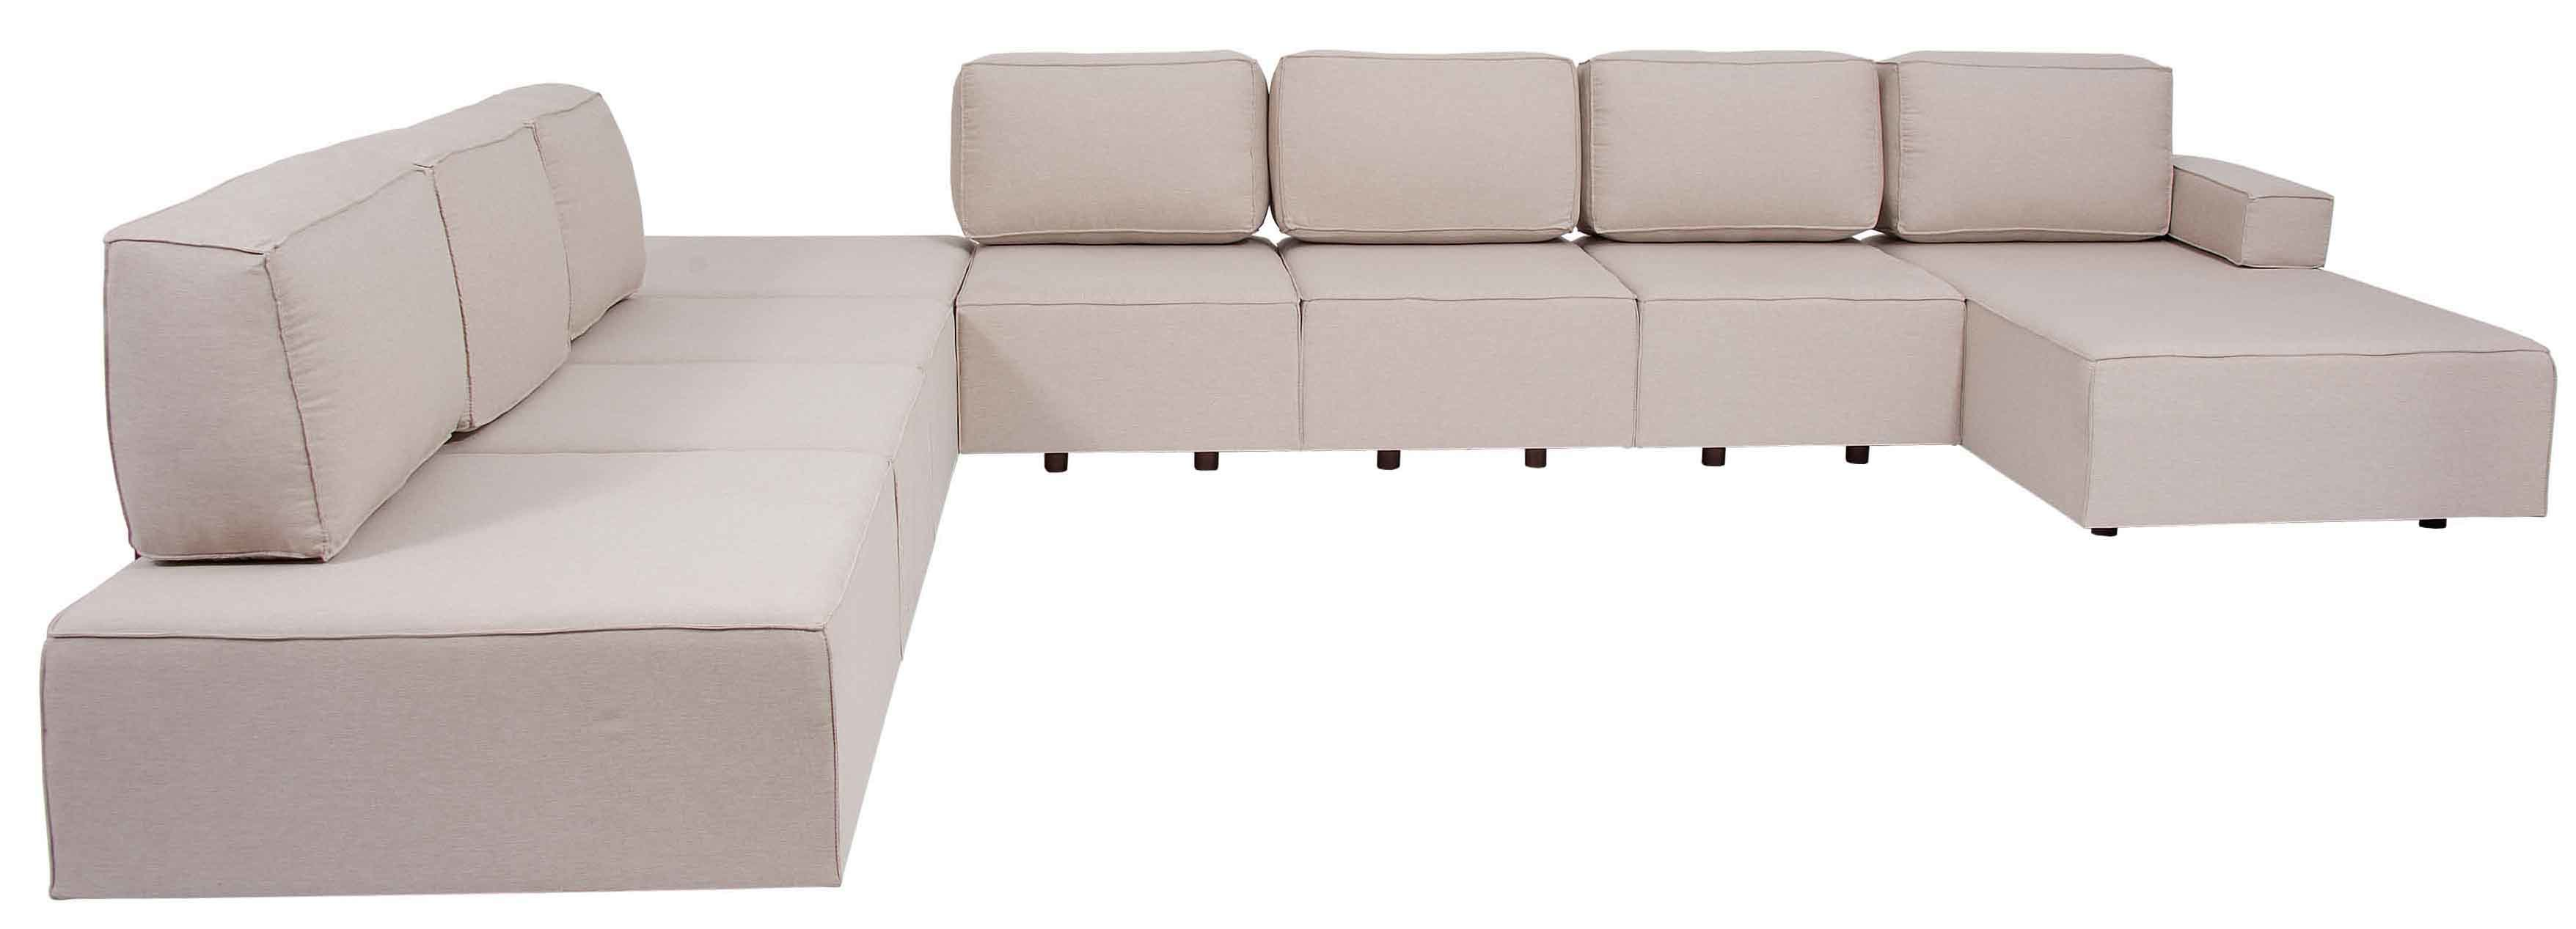 block-sofa-back-element-d-by-pedro-useche